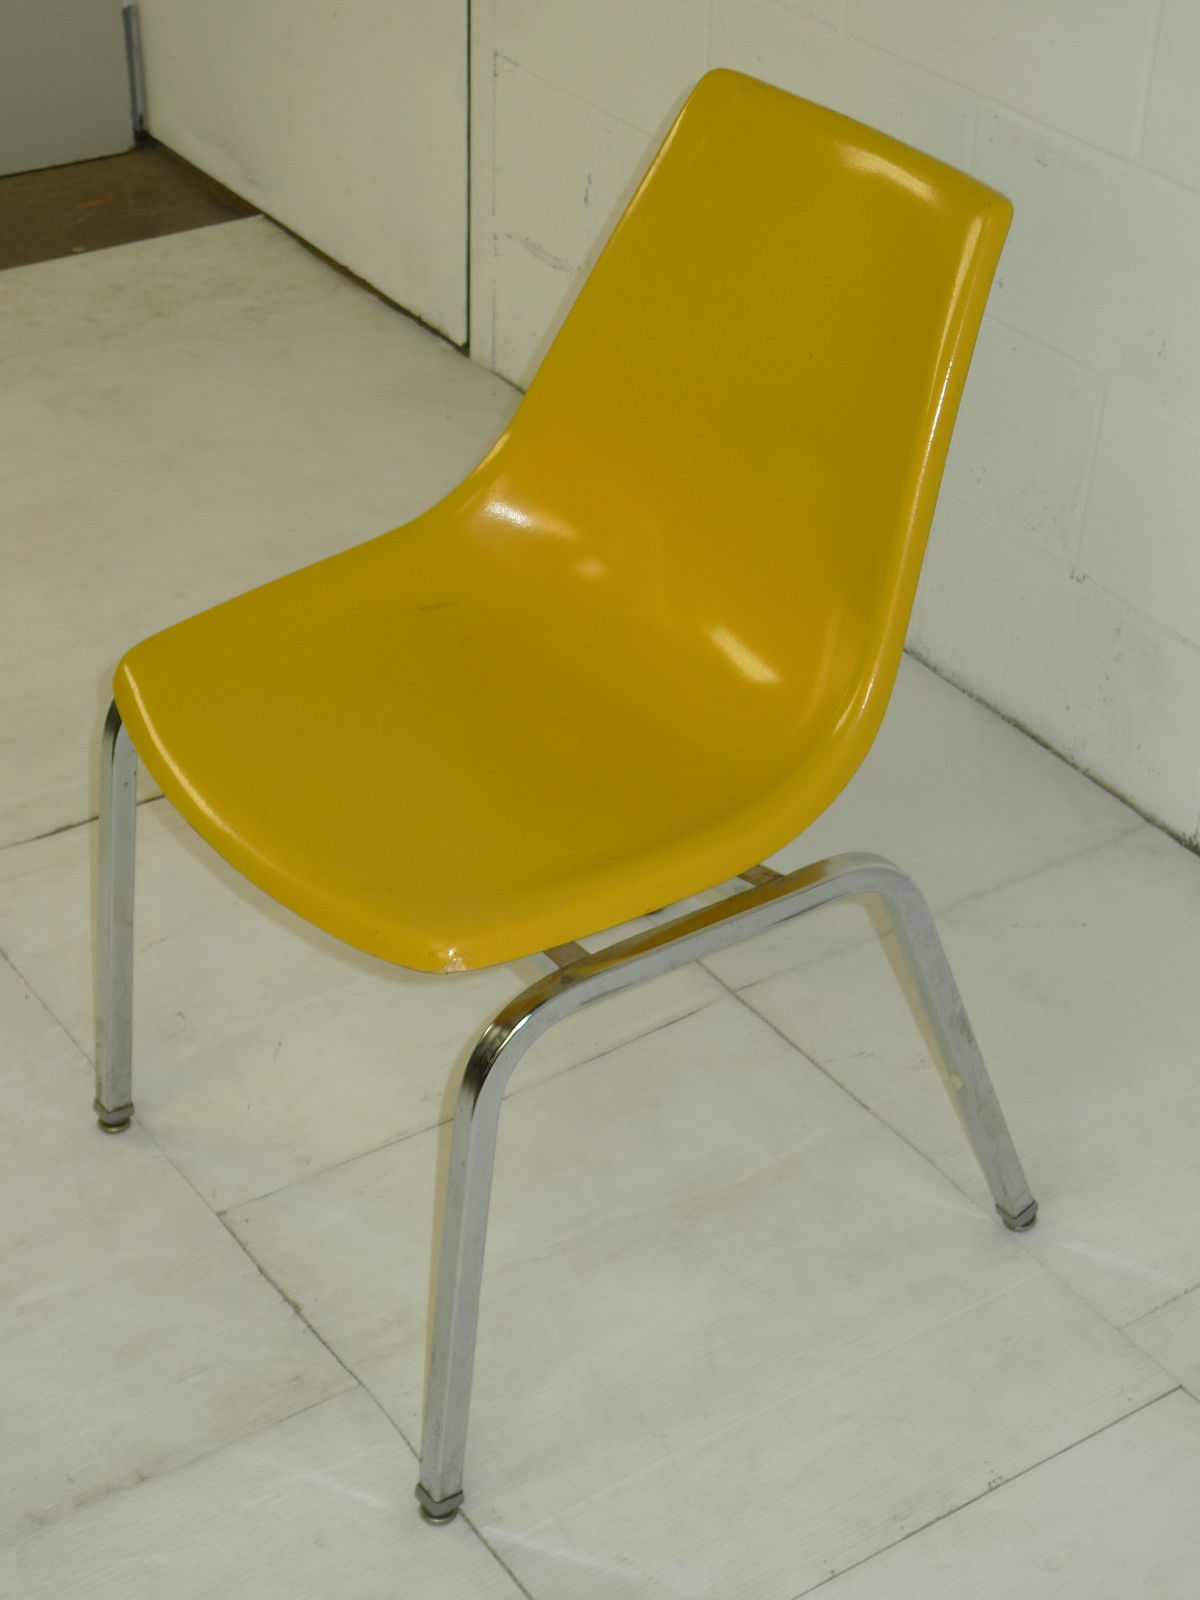 yellow chairs for sale cow print office chair light fiberglass and chromed space age eames era